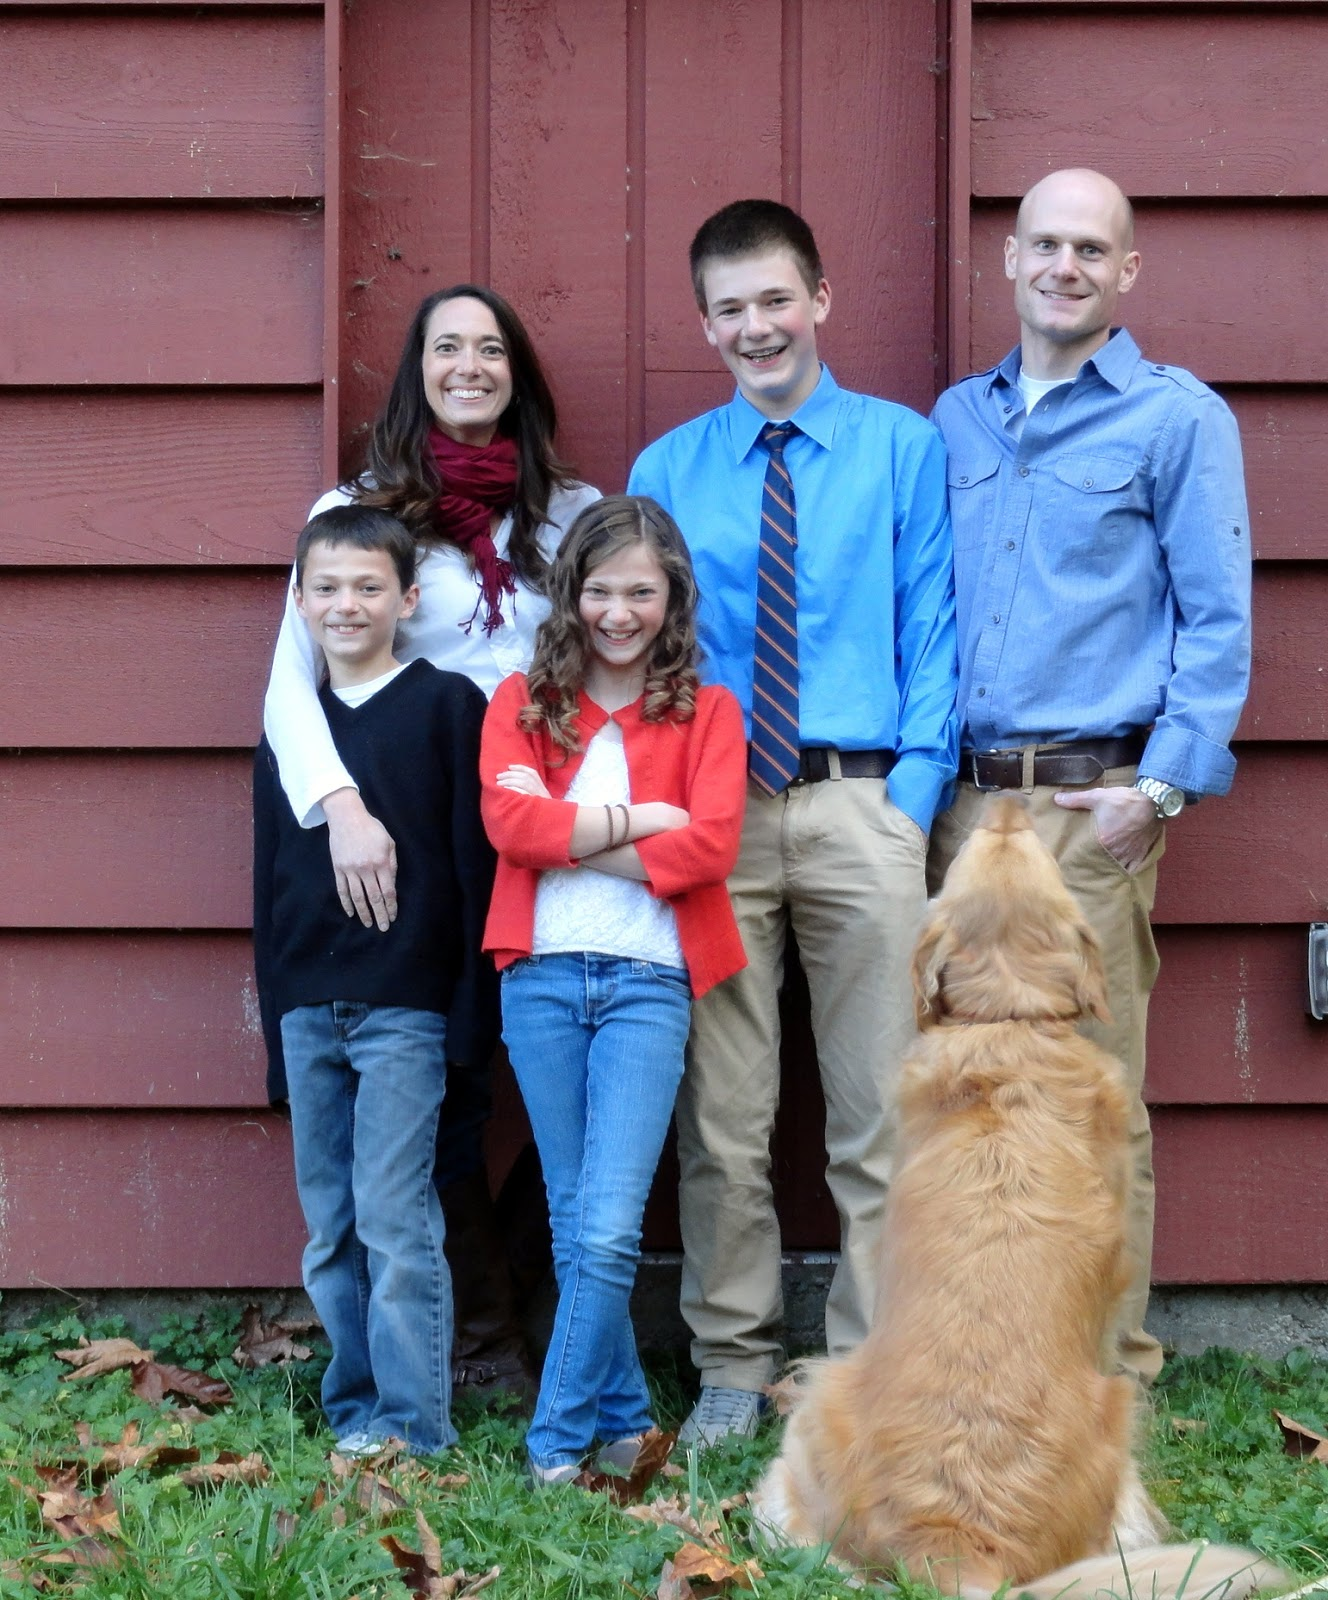 family pictures with dog